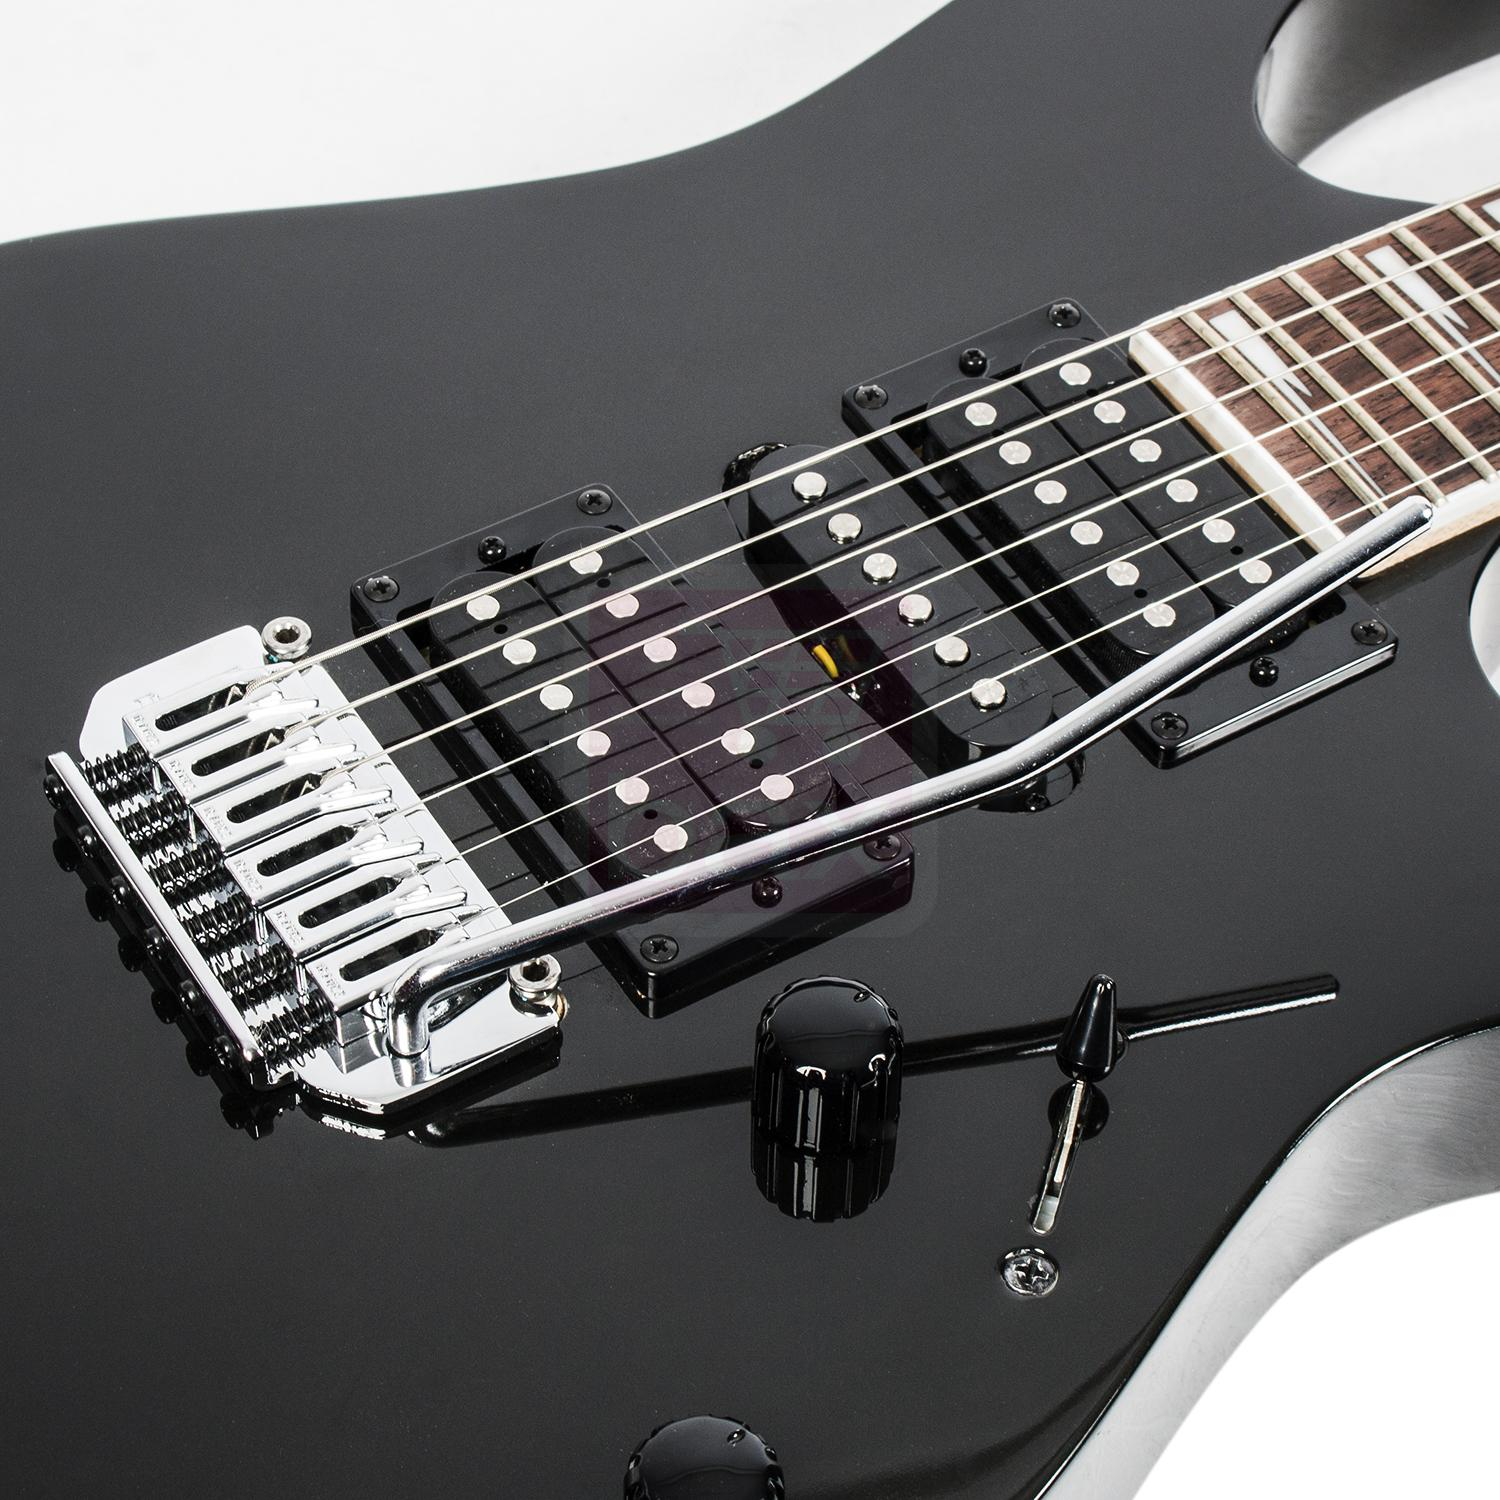 Powersound pickups | Ibanez Wiki | Fandom powered by Wikia